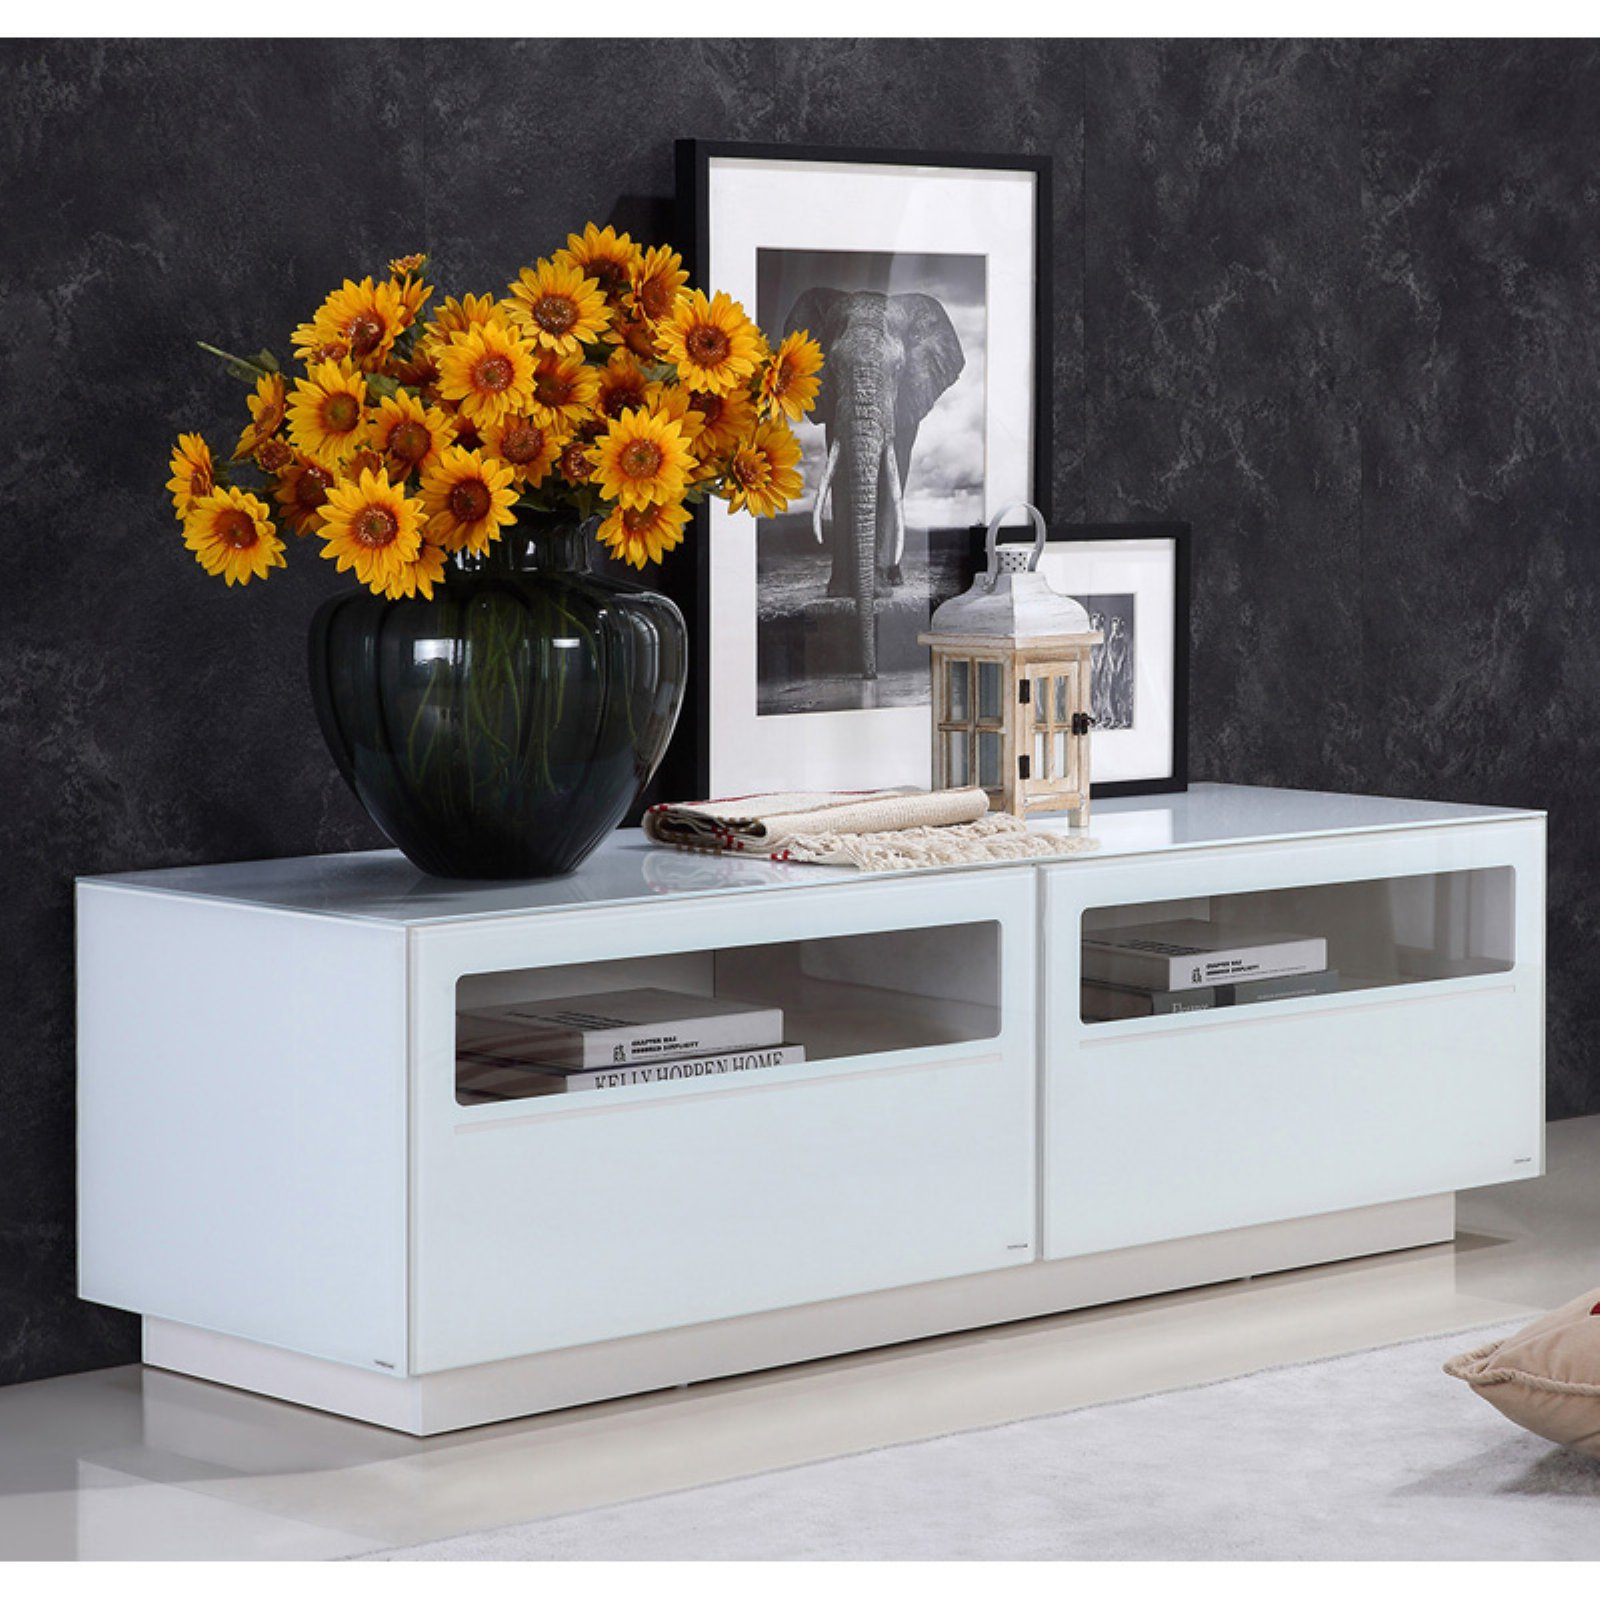 Casabianca Furniture Corte 59 in. TV Stand